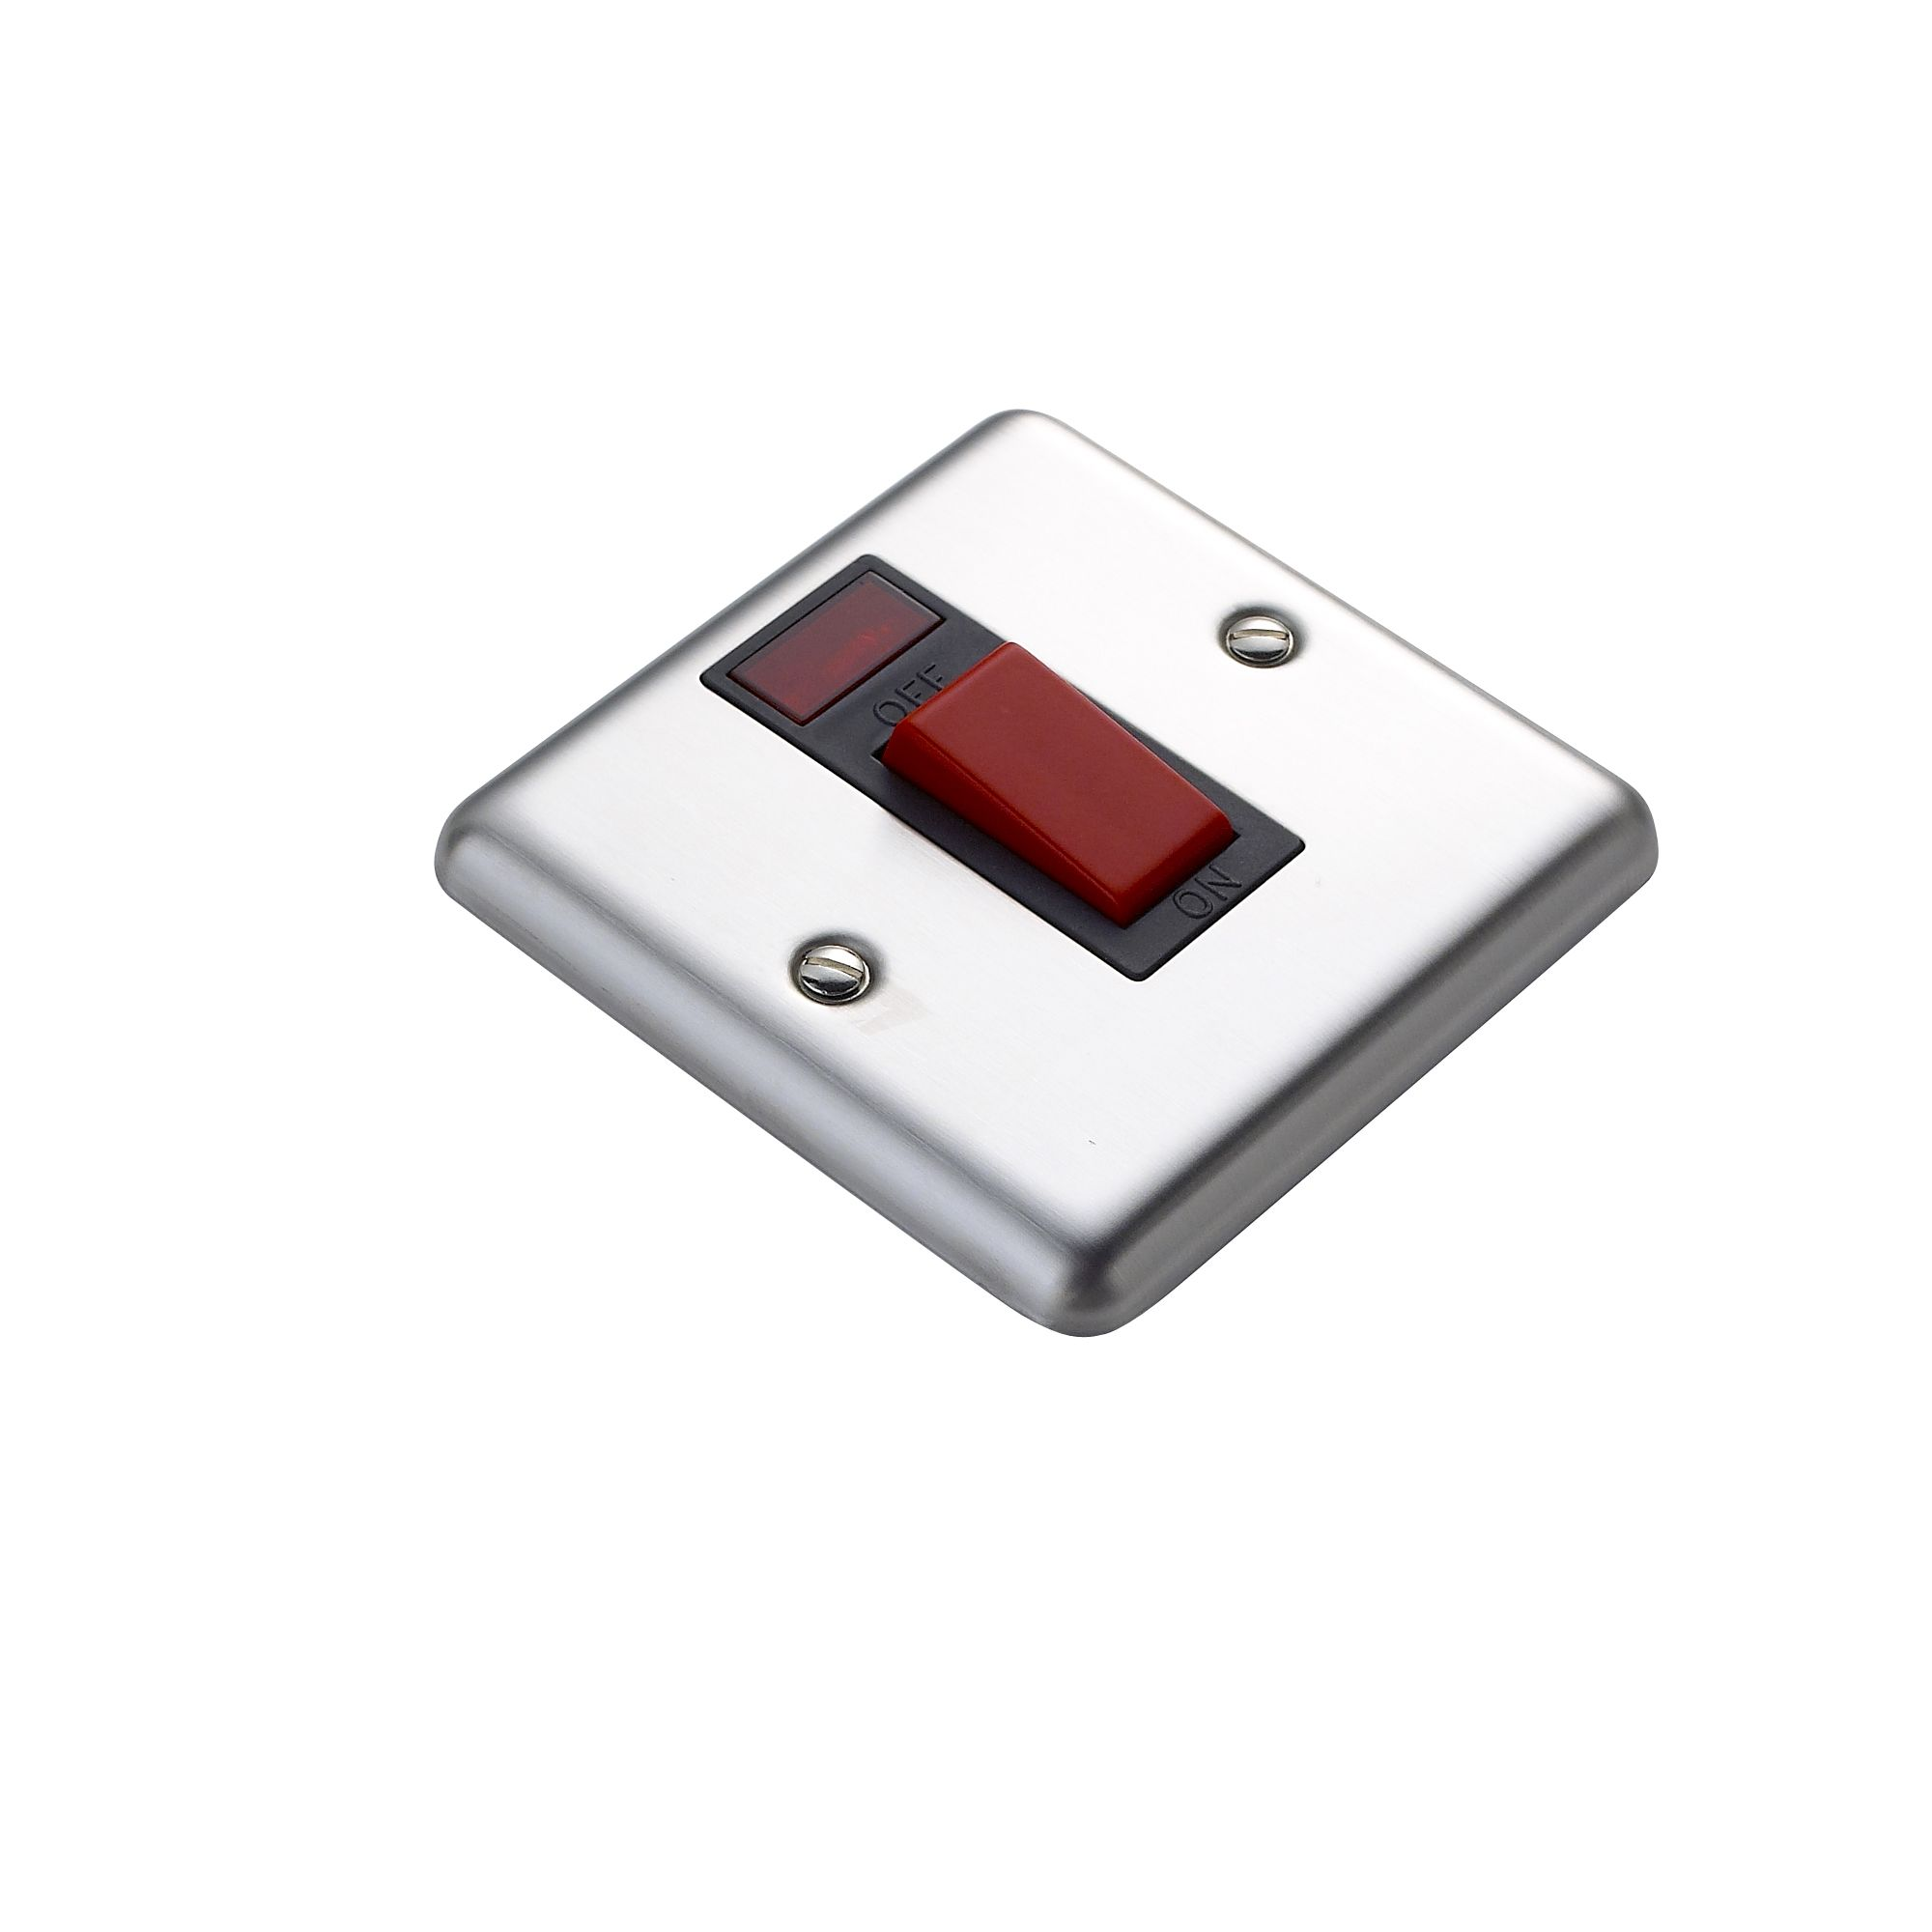 Volex 45a Double Pole Stainless Steel Effect Cooker Switch